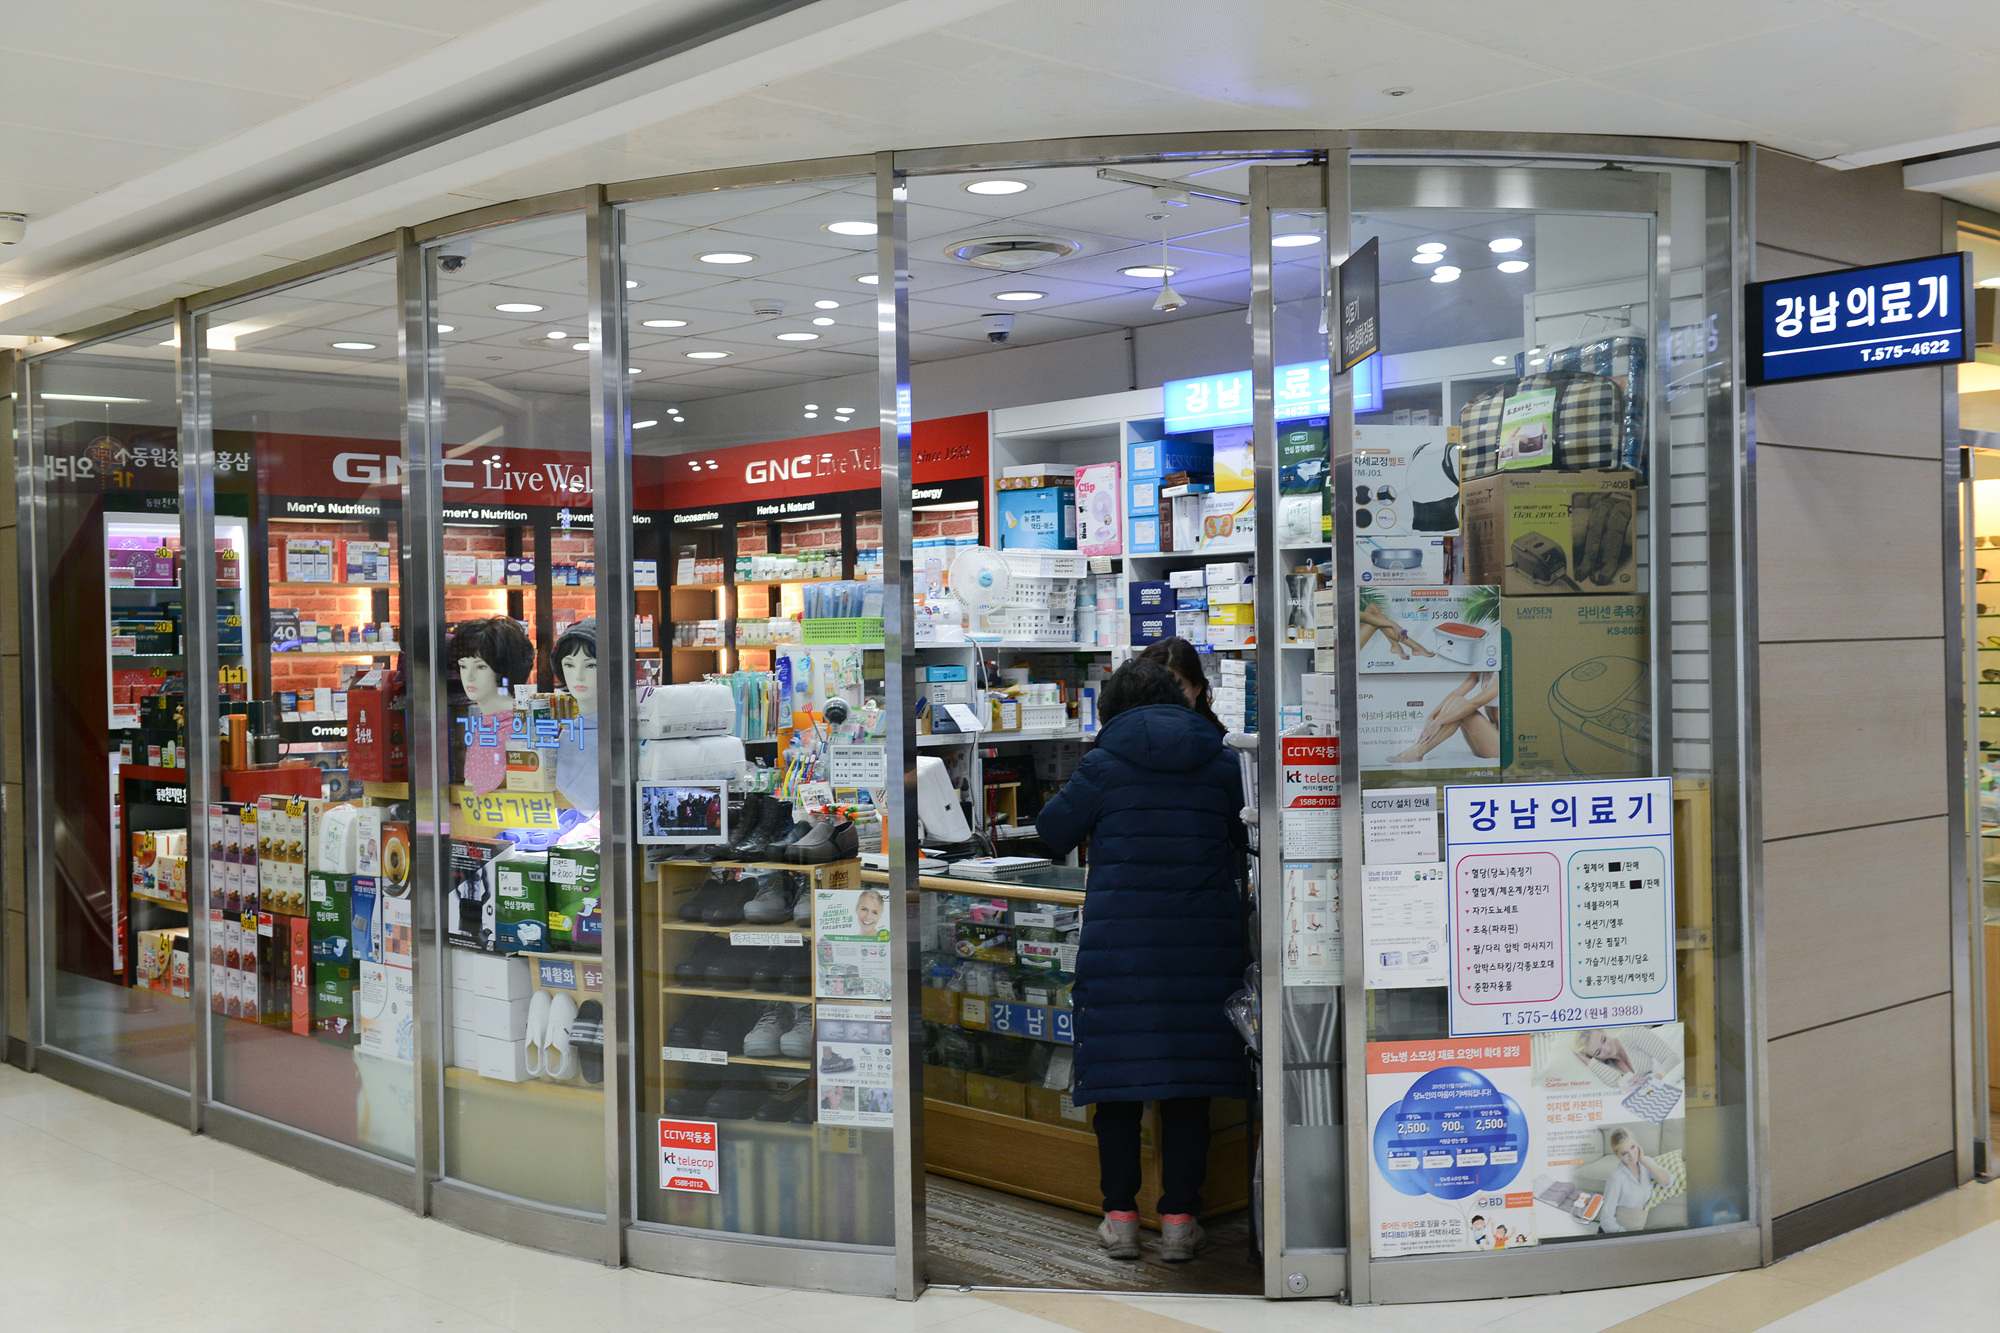 Medical device store (GNC)